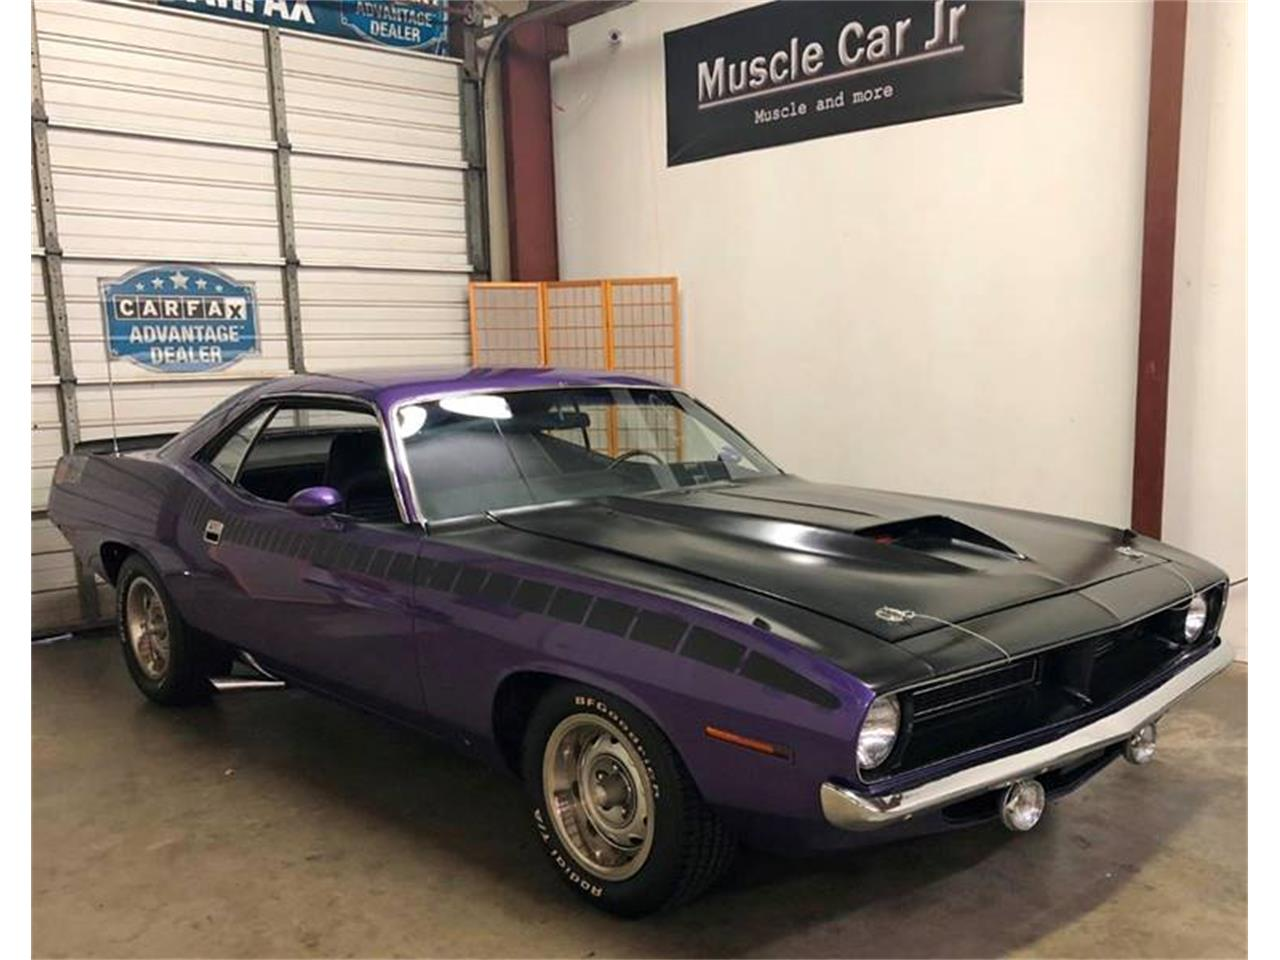 Large Picture of 1970 Plymouth Barracuda located in Georgia Offered by Muscle Car Jr - PZC6